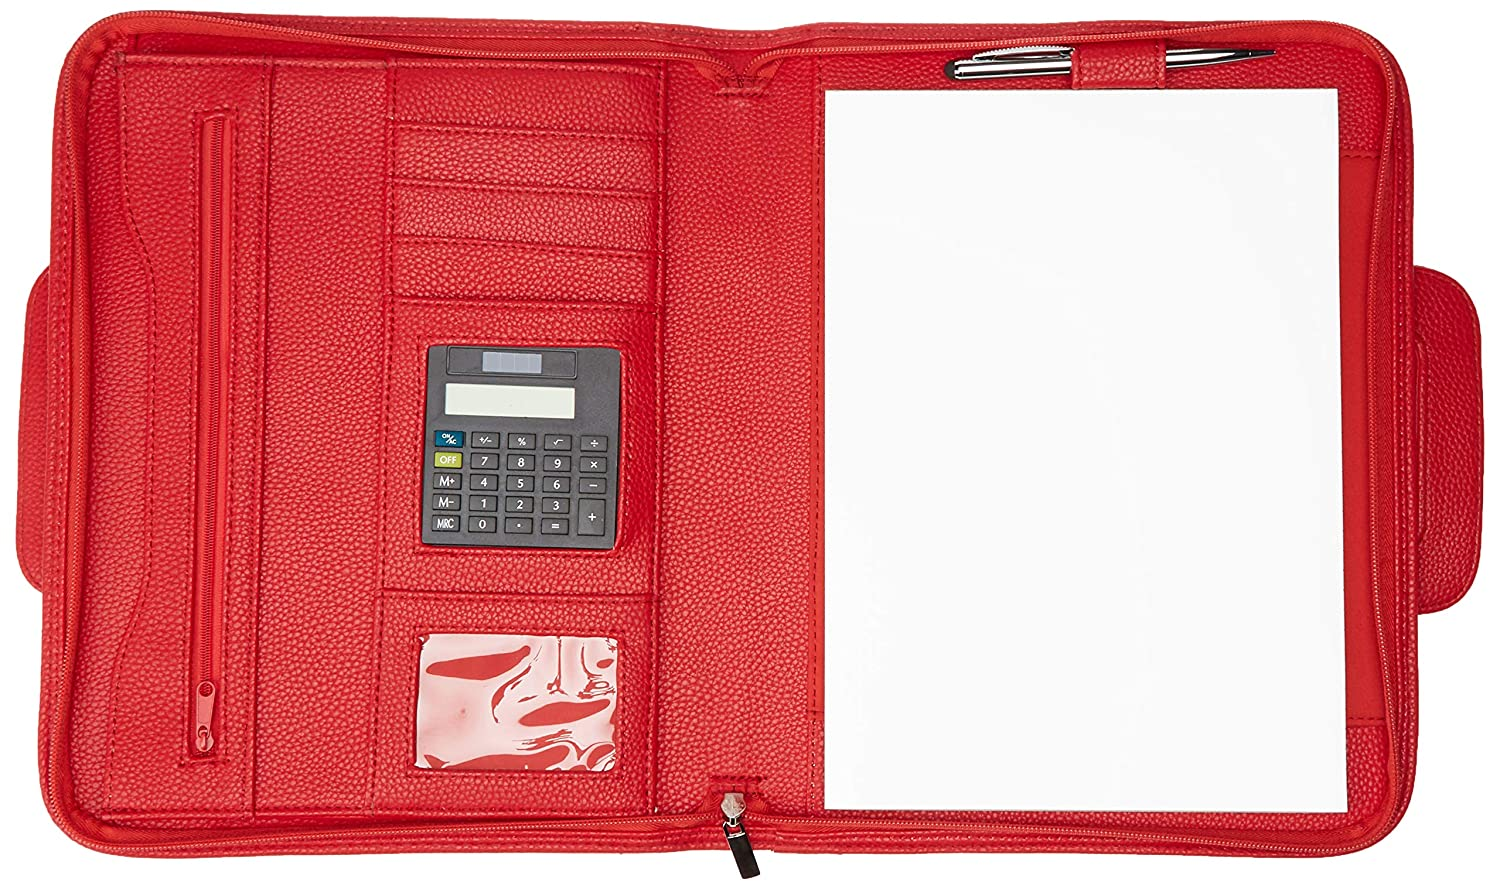 Editions Oberthur 425125.0/Brisbane A4/Zip Conference Folder with Retractable Handles Red